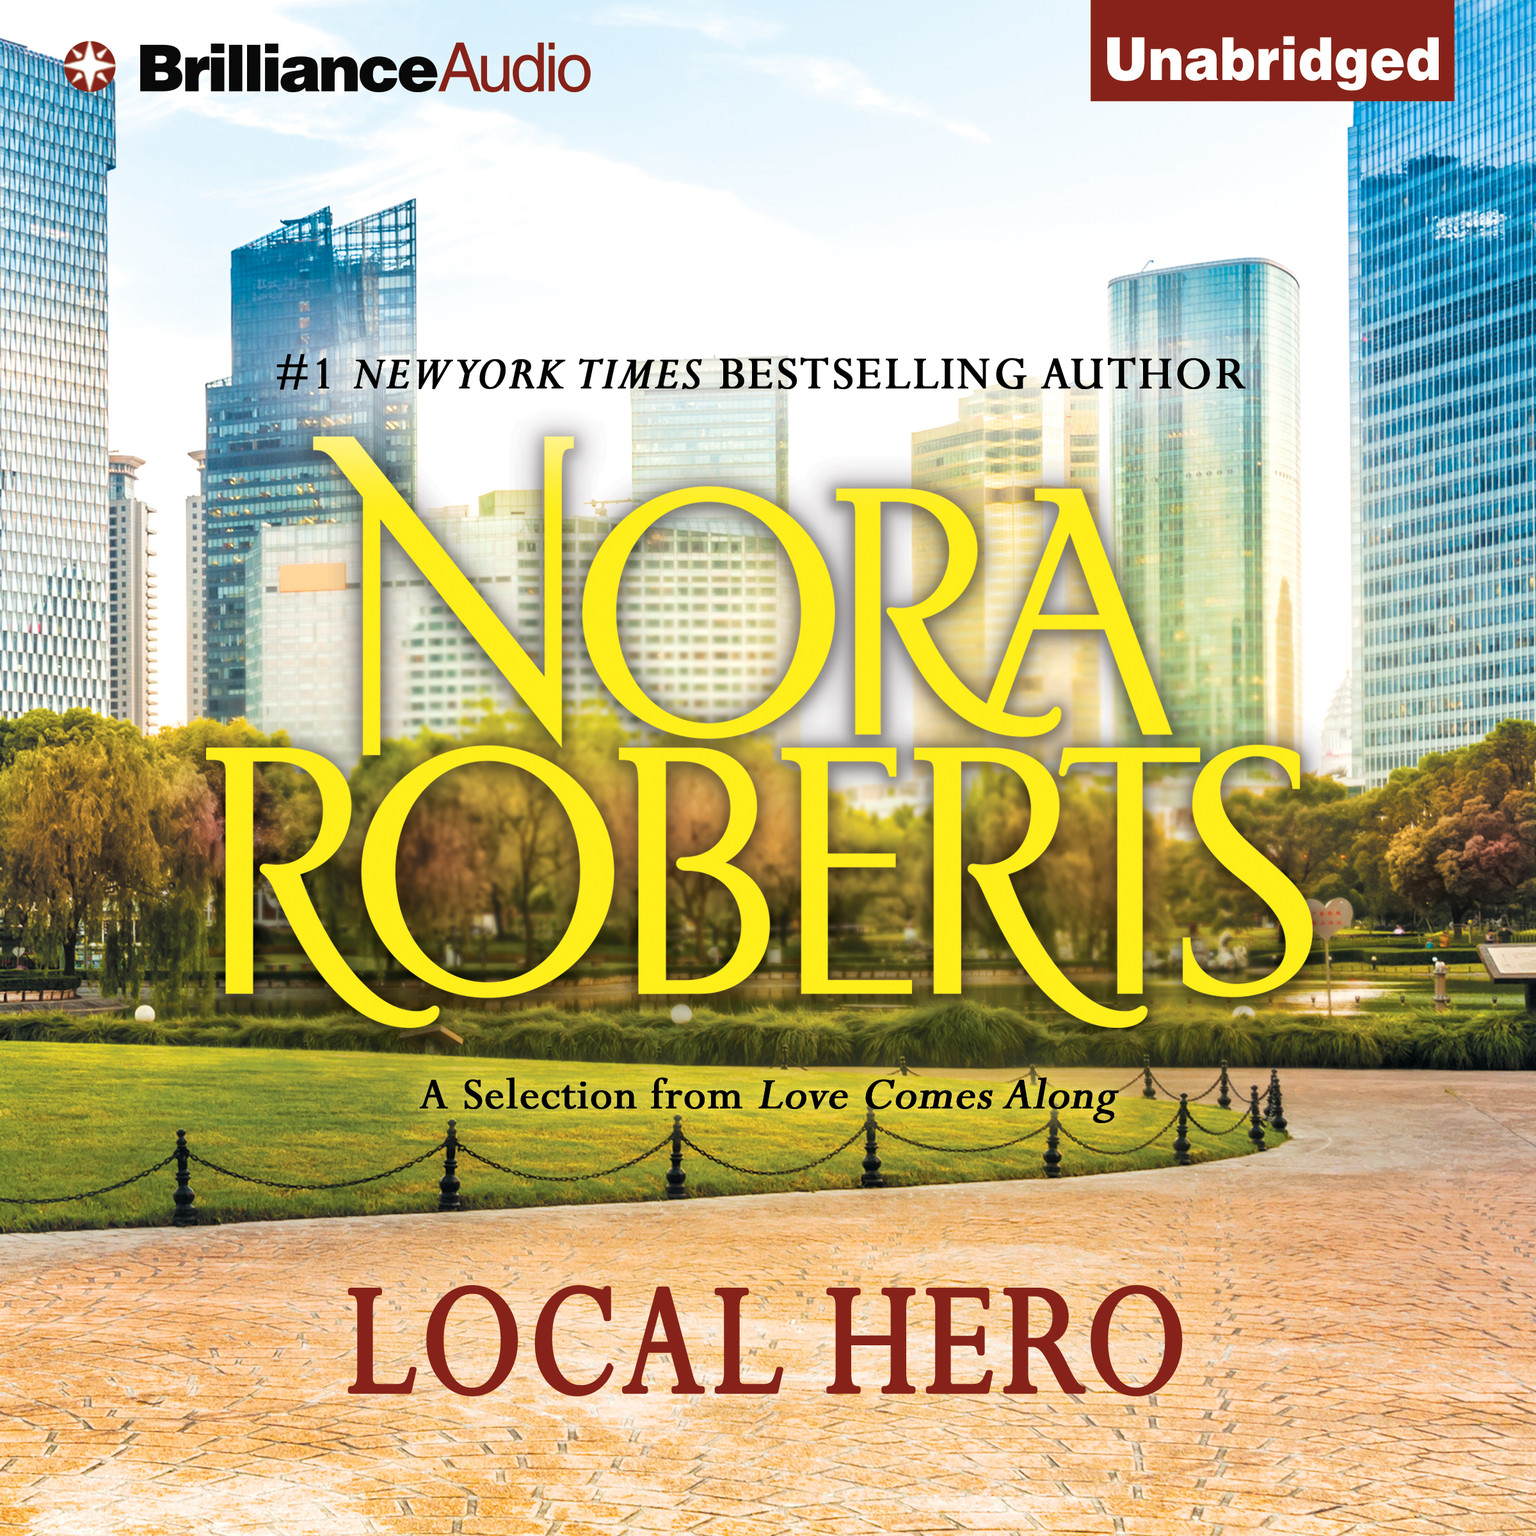 Printable Local Hero: A Selection from Love Comes Along Audiobook Cover Art